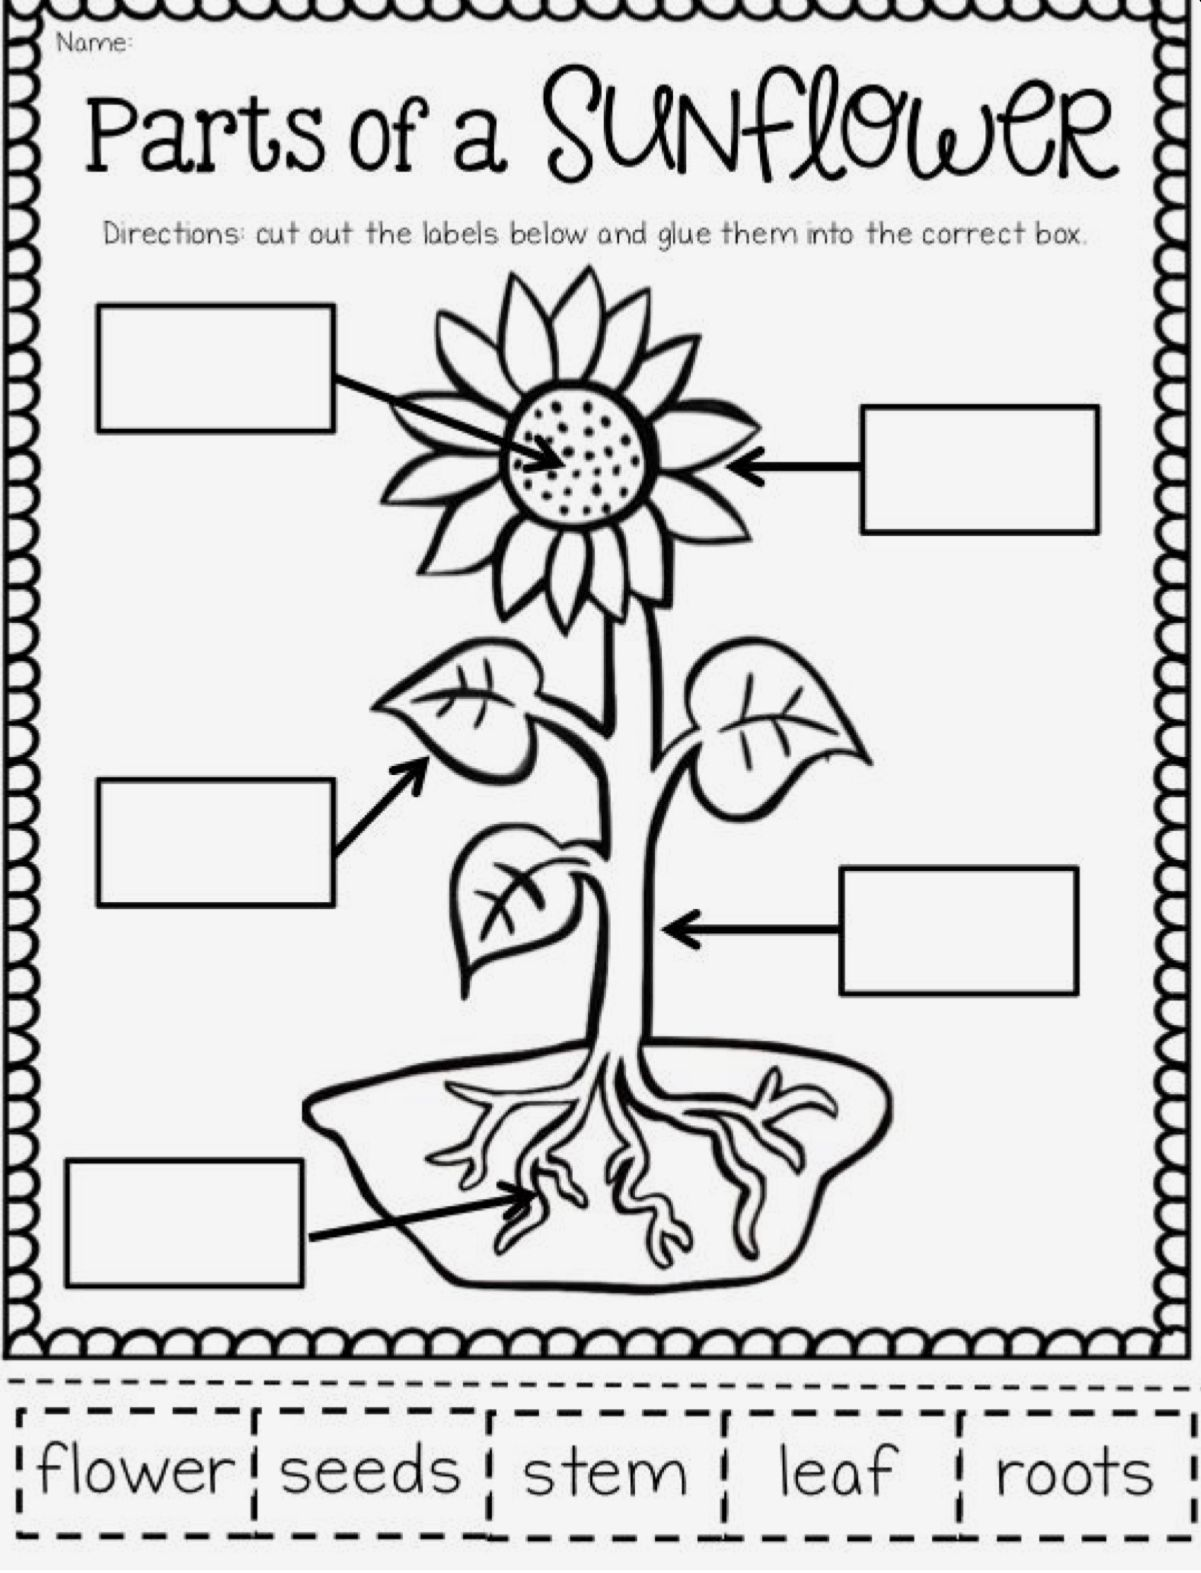 Pin by Melani Dennington on Kids Learning & Coloring Pages